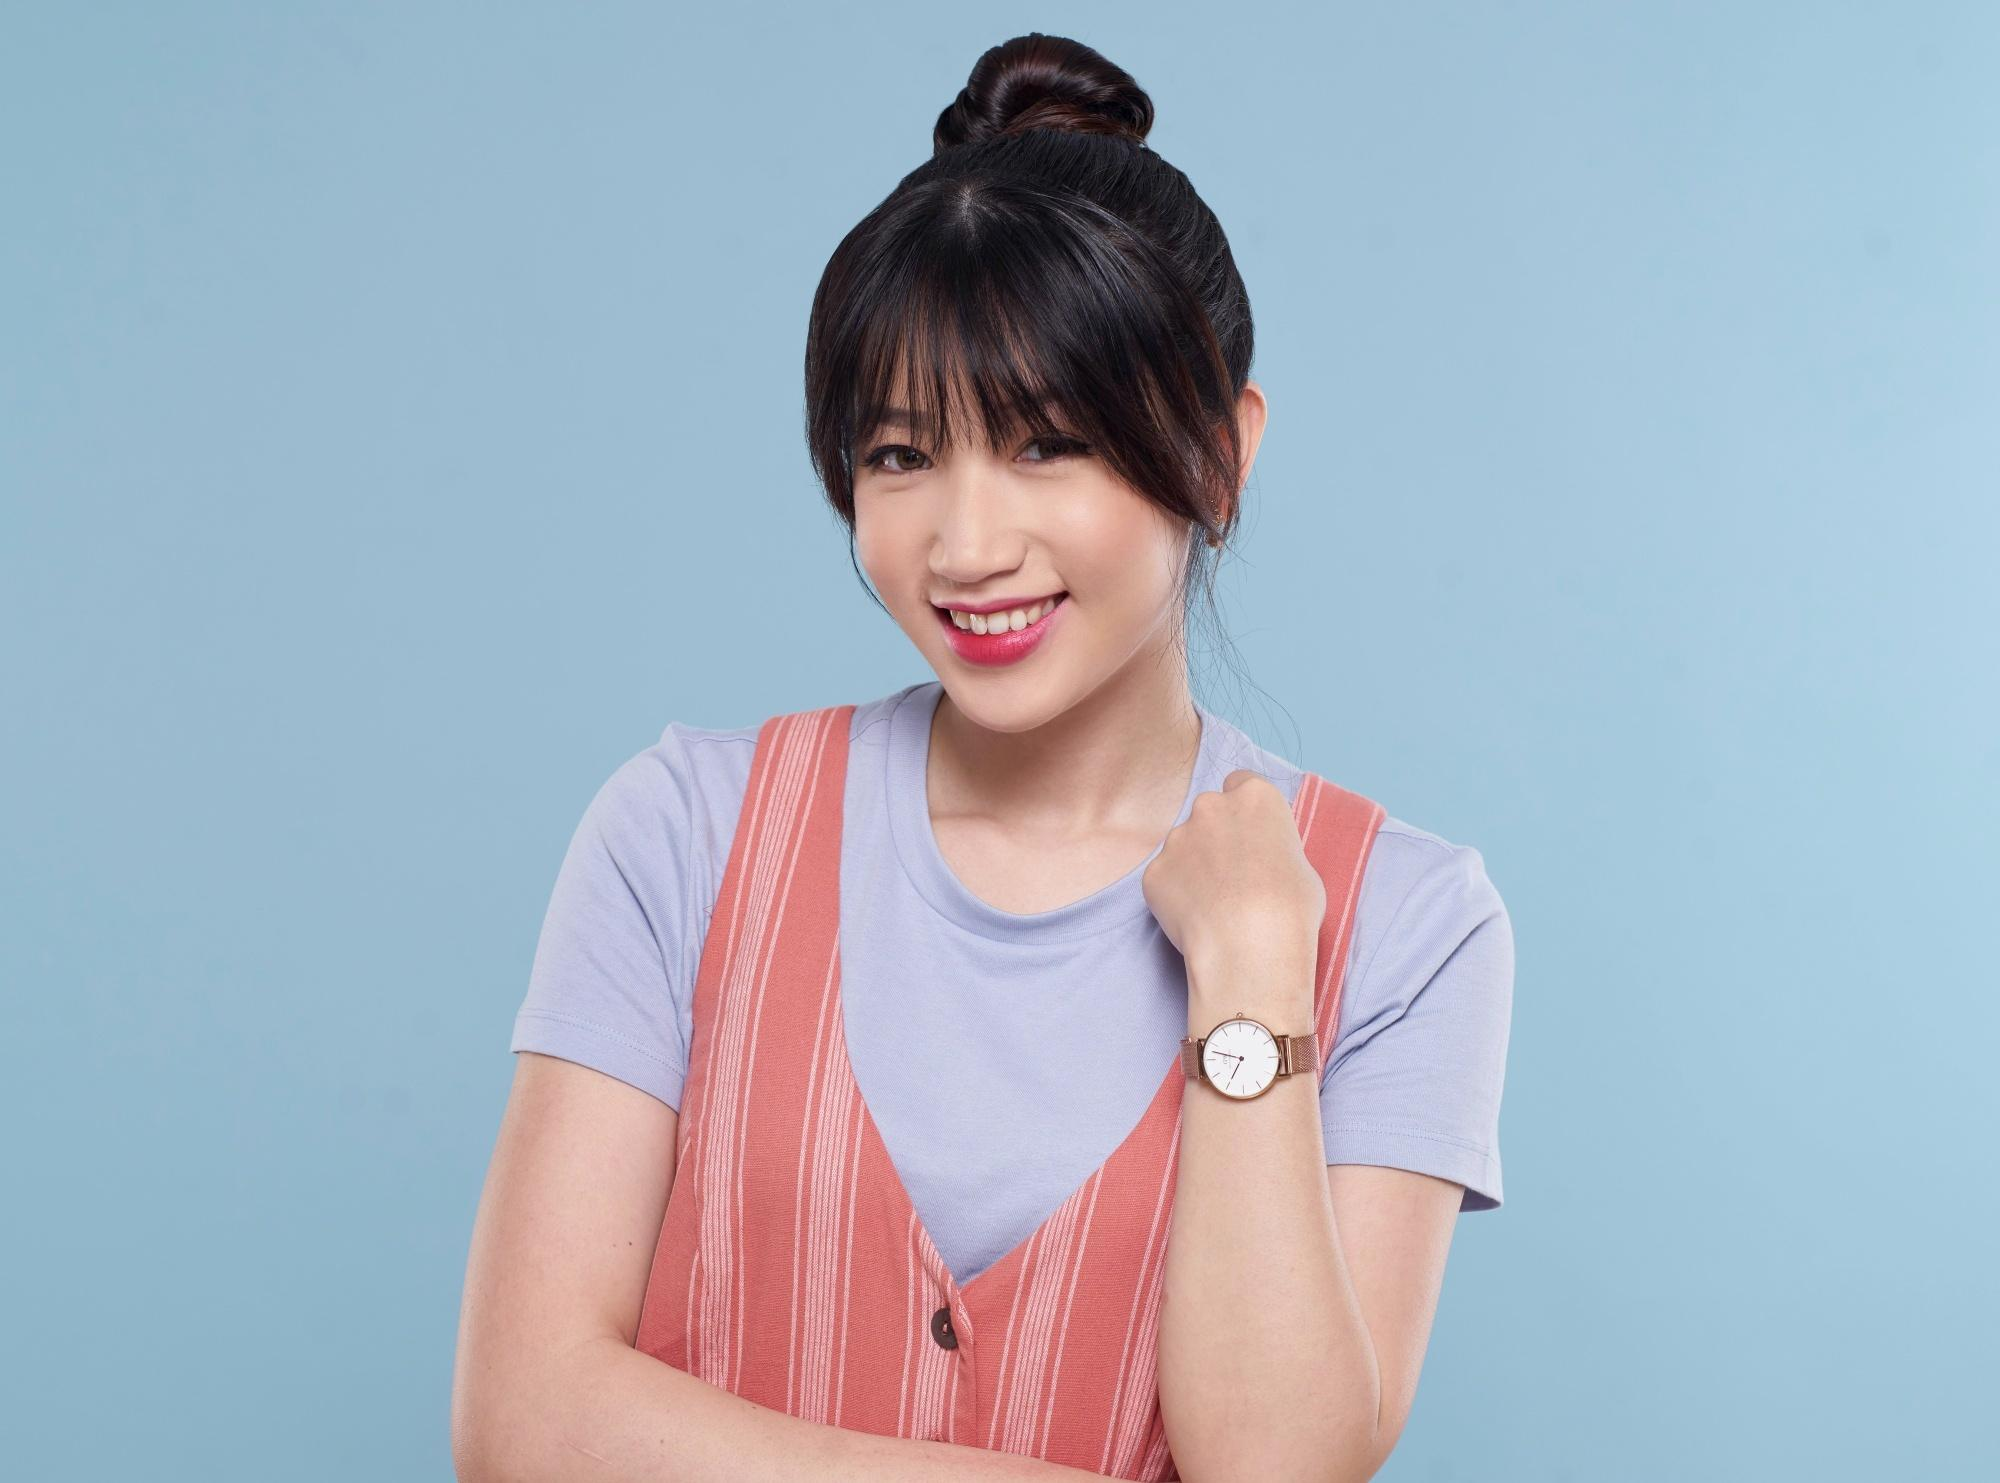 Asian woman with black hair with bangs sporting a top knot hairstyle